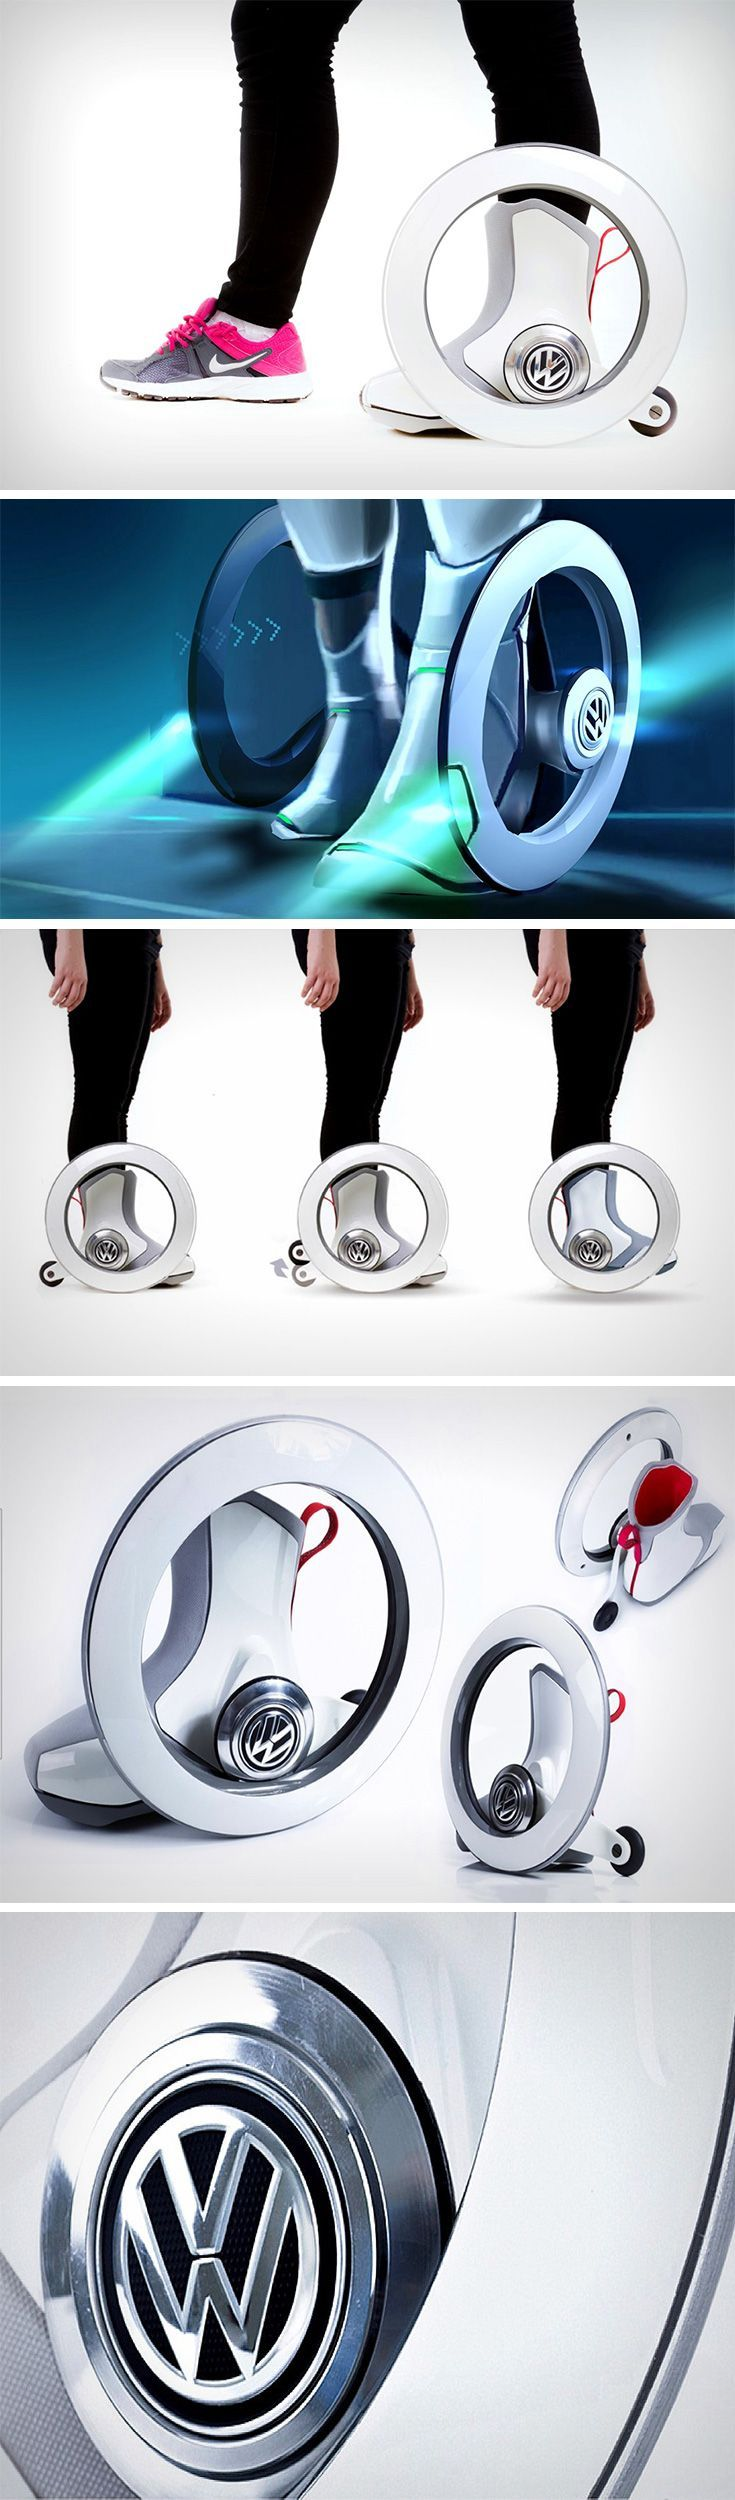 The Volkswagen Roller is a new-age roller skate. It's autonomous, and hands-free. The design comes with two main hubless wheels and two retractable rear wheels. Each roller comes with a hard-plastic shoe that you slide your feet into.